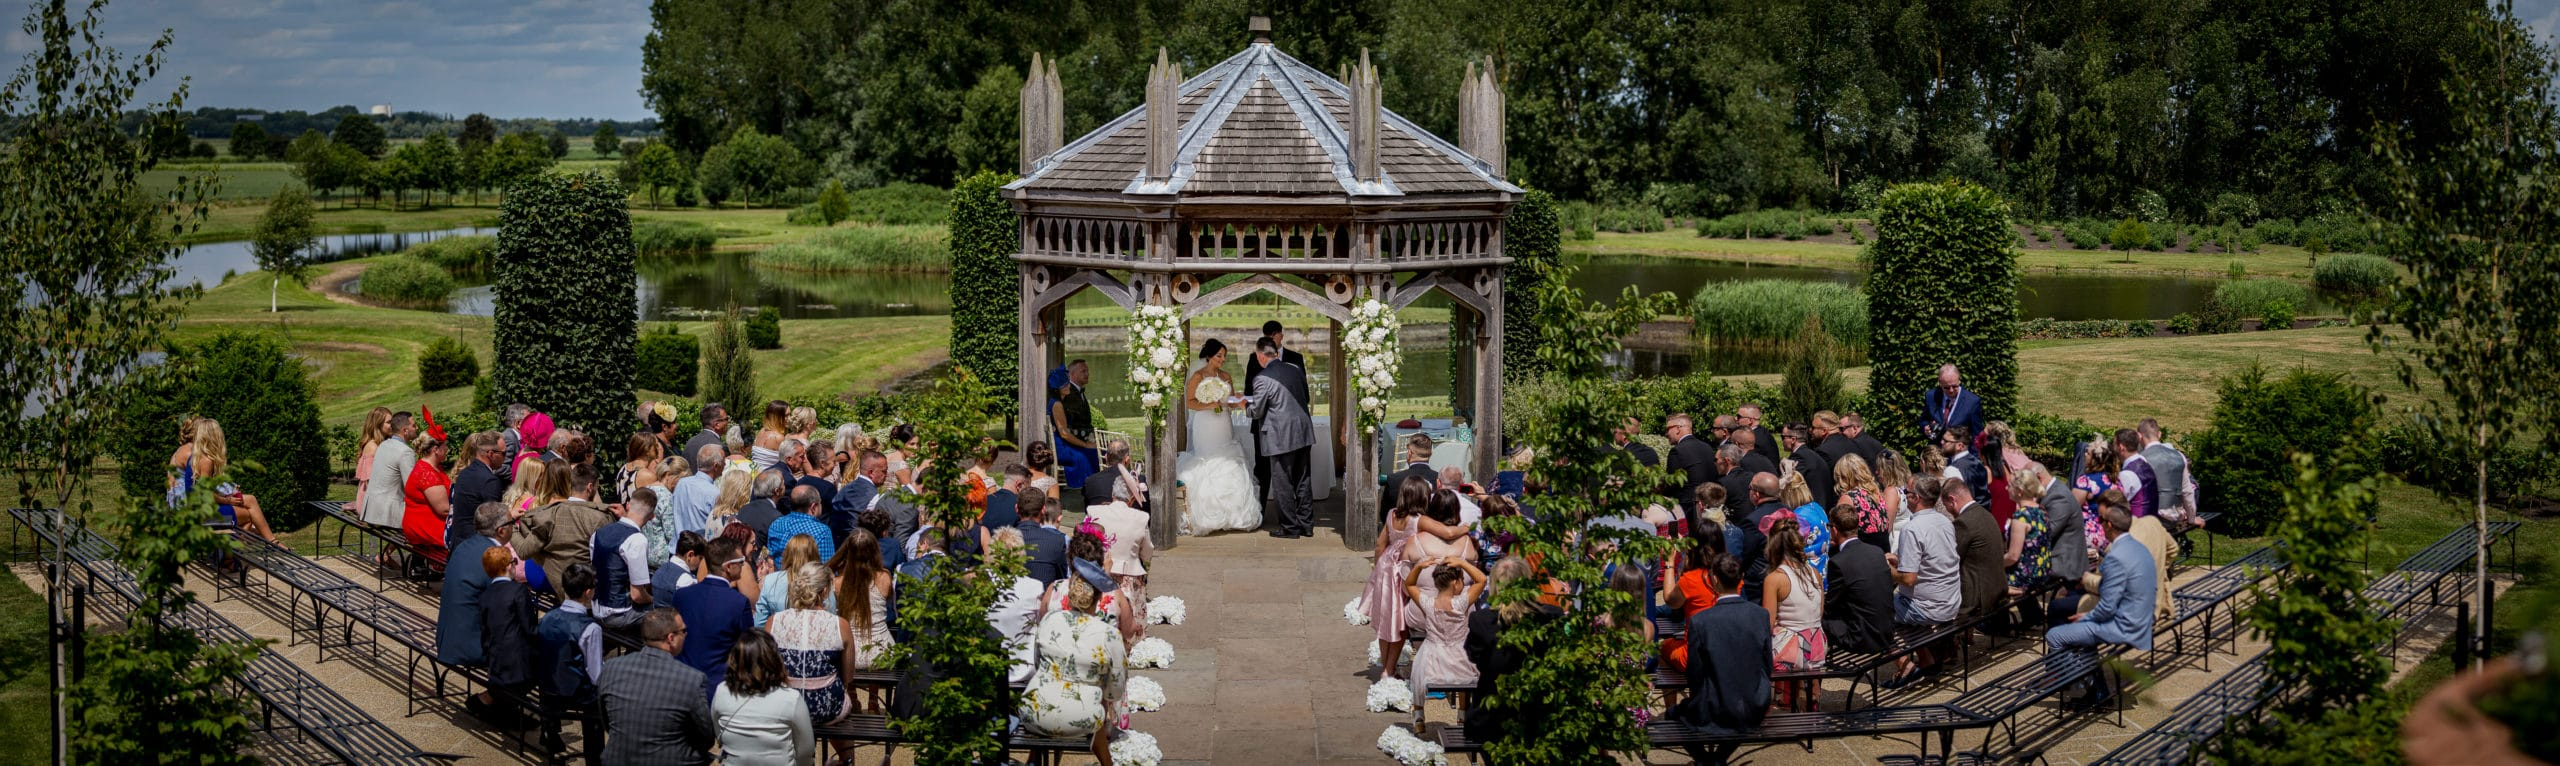 Outdoor Ceremony at the Old Hall in Ely